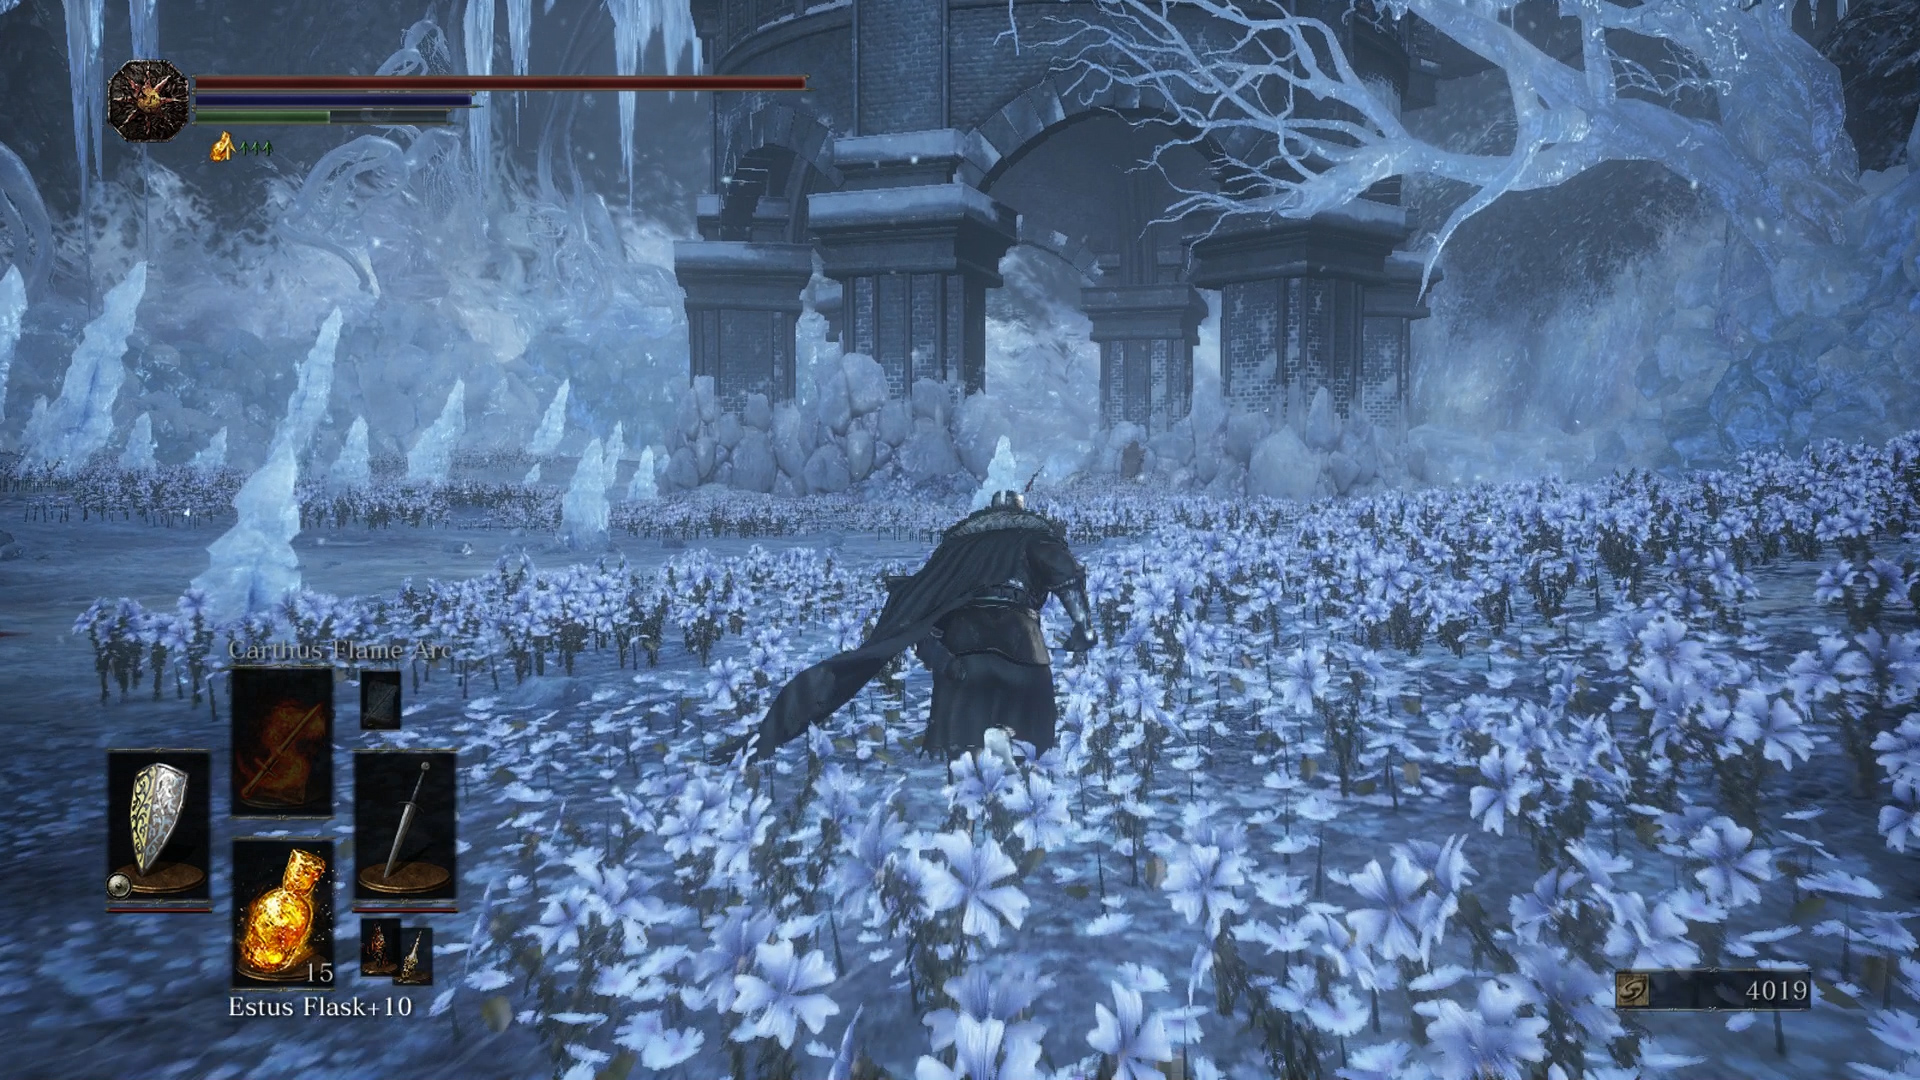 Easy-to-miss locations are vital in unlocking PvP: A Dark Souls theme or needlessly obscure?